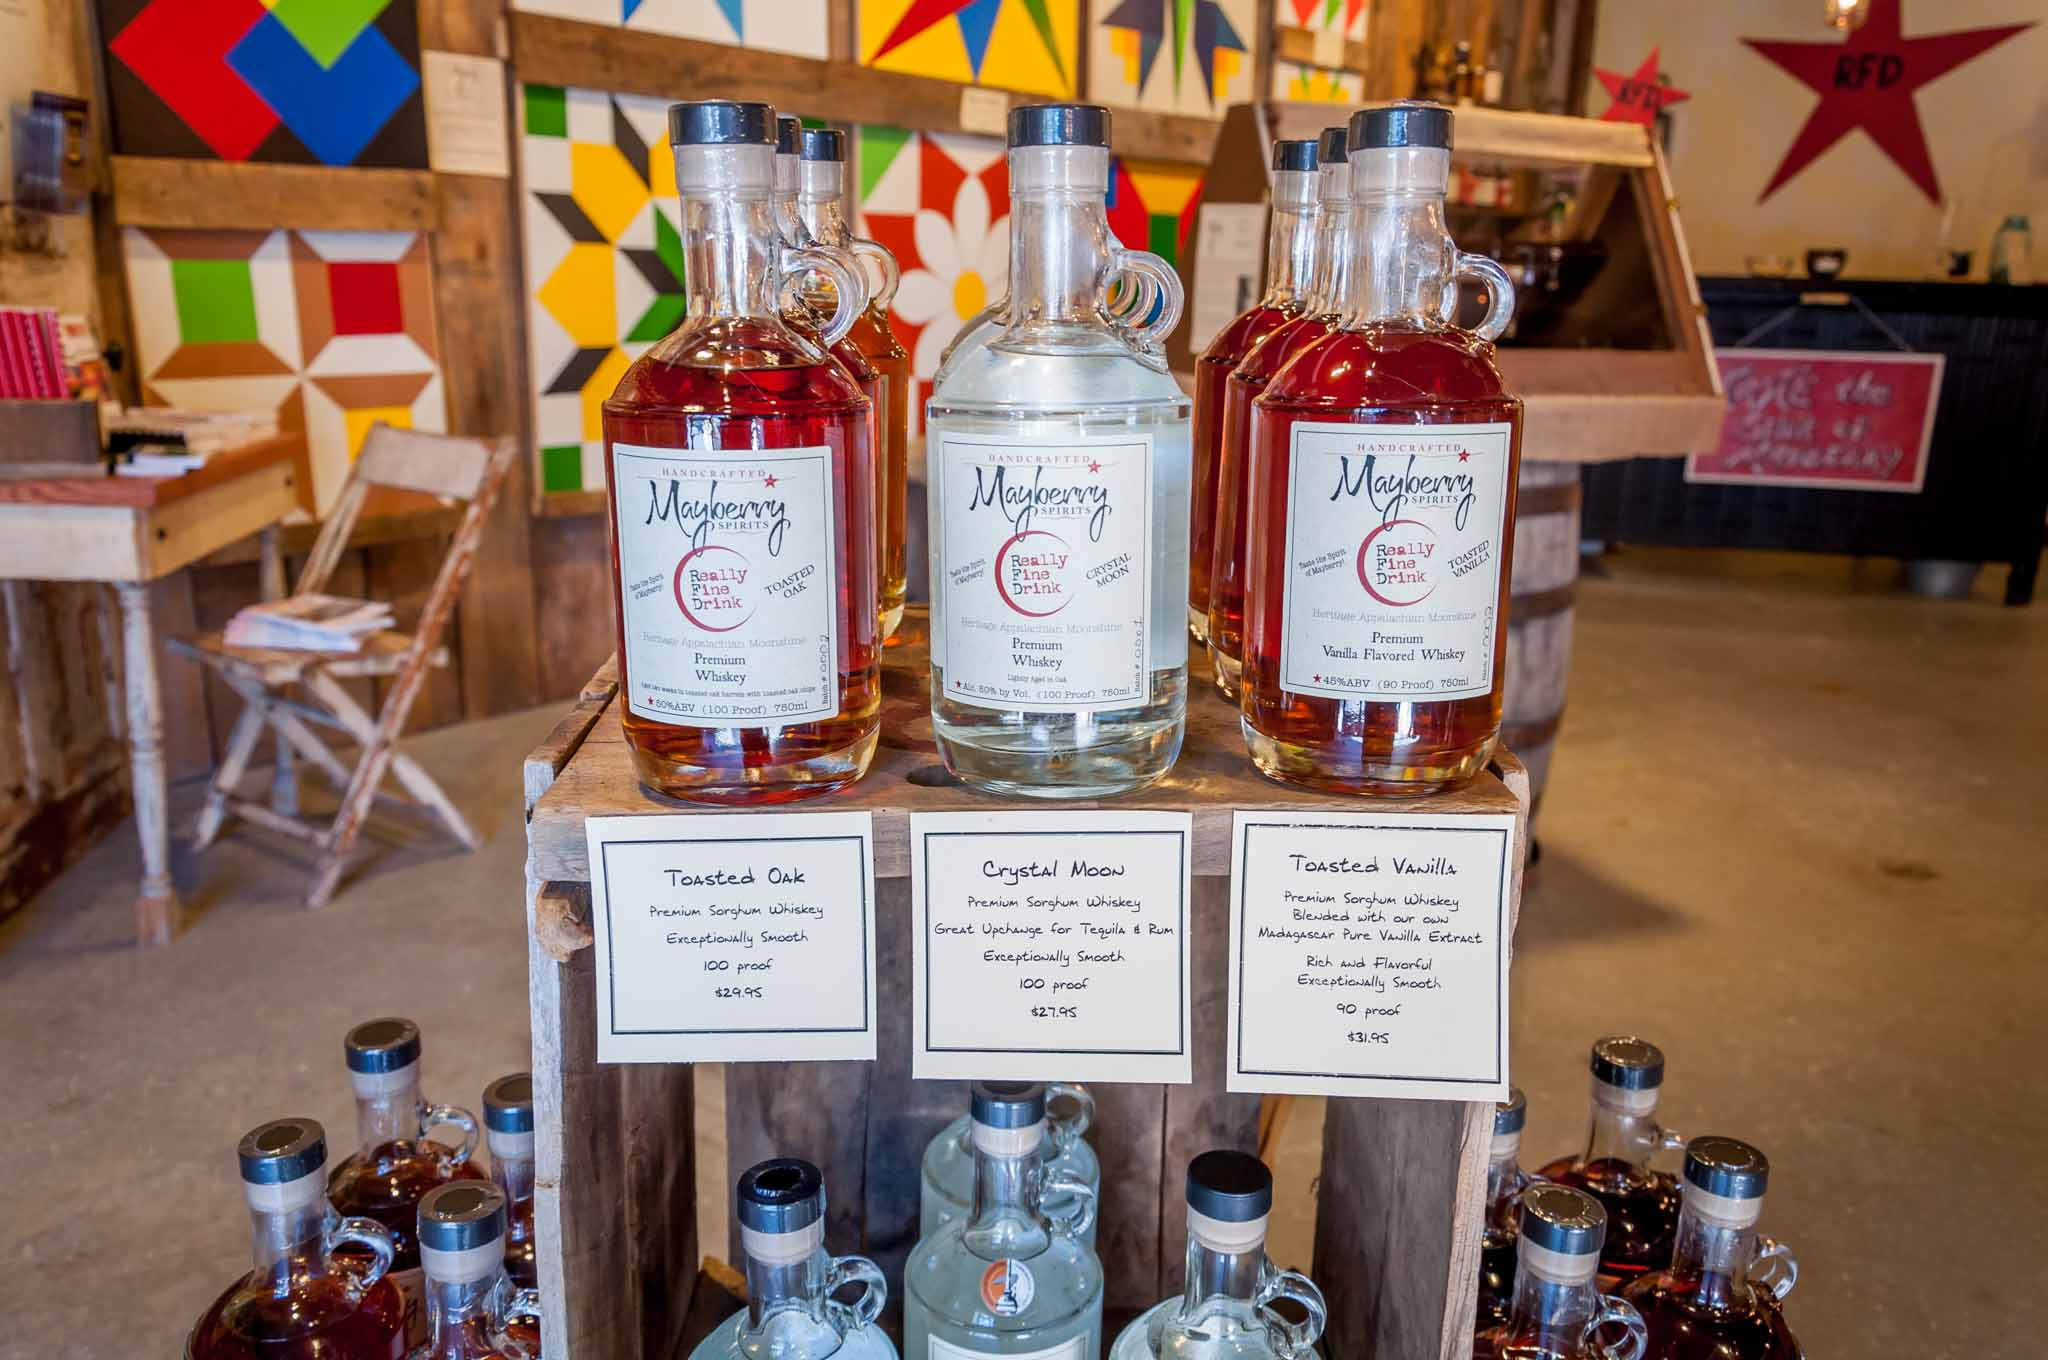 Bottles of Mayberry Spirits whiskey for sale